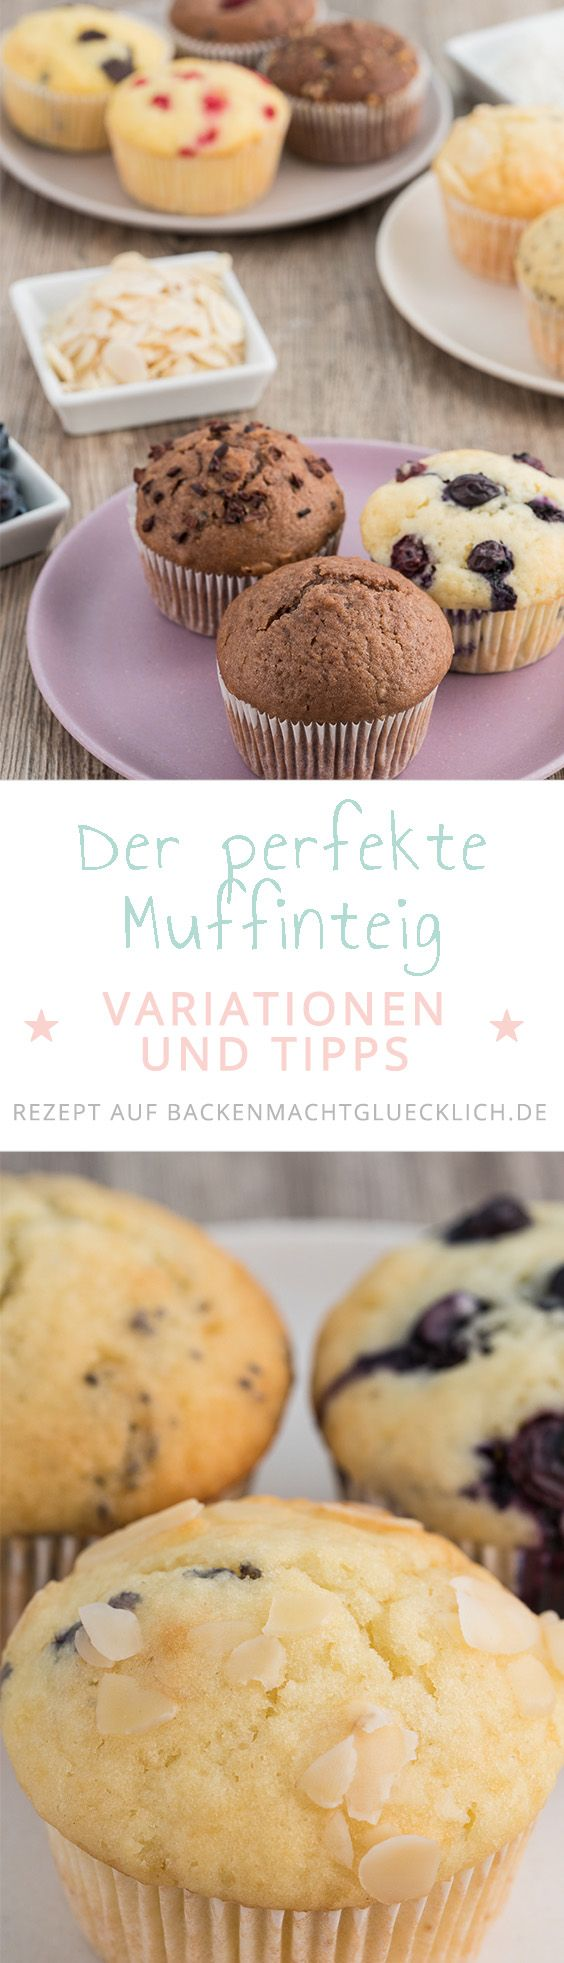 grundrezept f r muffins rezept food baking kuchen muffins etc pinterest muffins. Black Bedroom Furniture Sets. Home Design Ideas